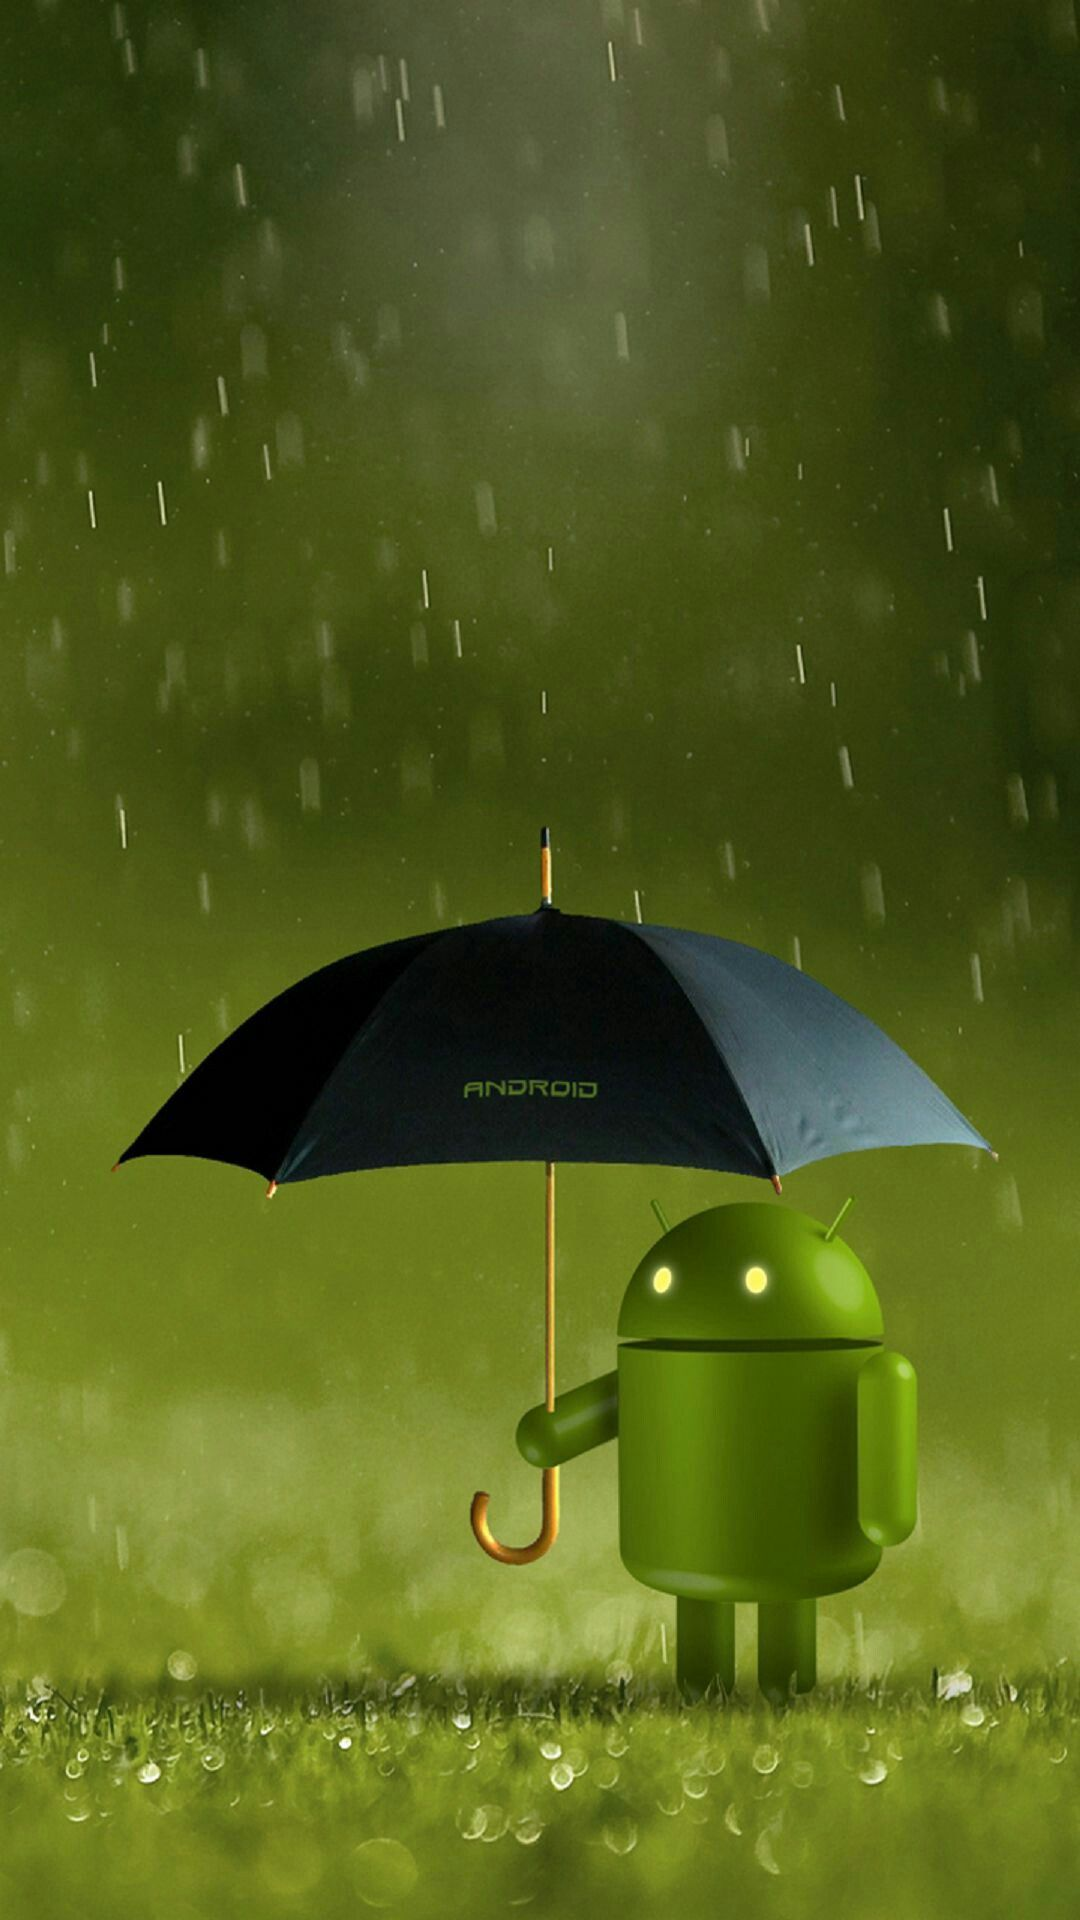 Android rainy day wallpaper Android security, Android